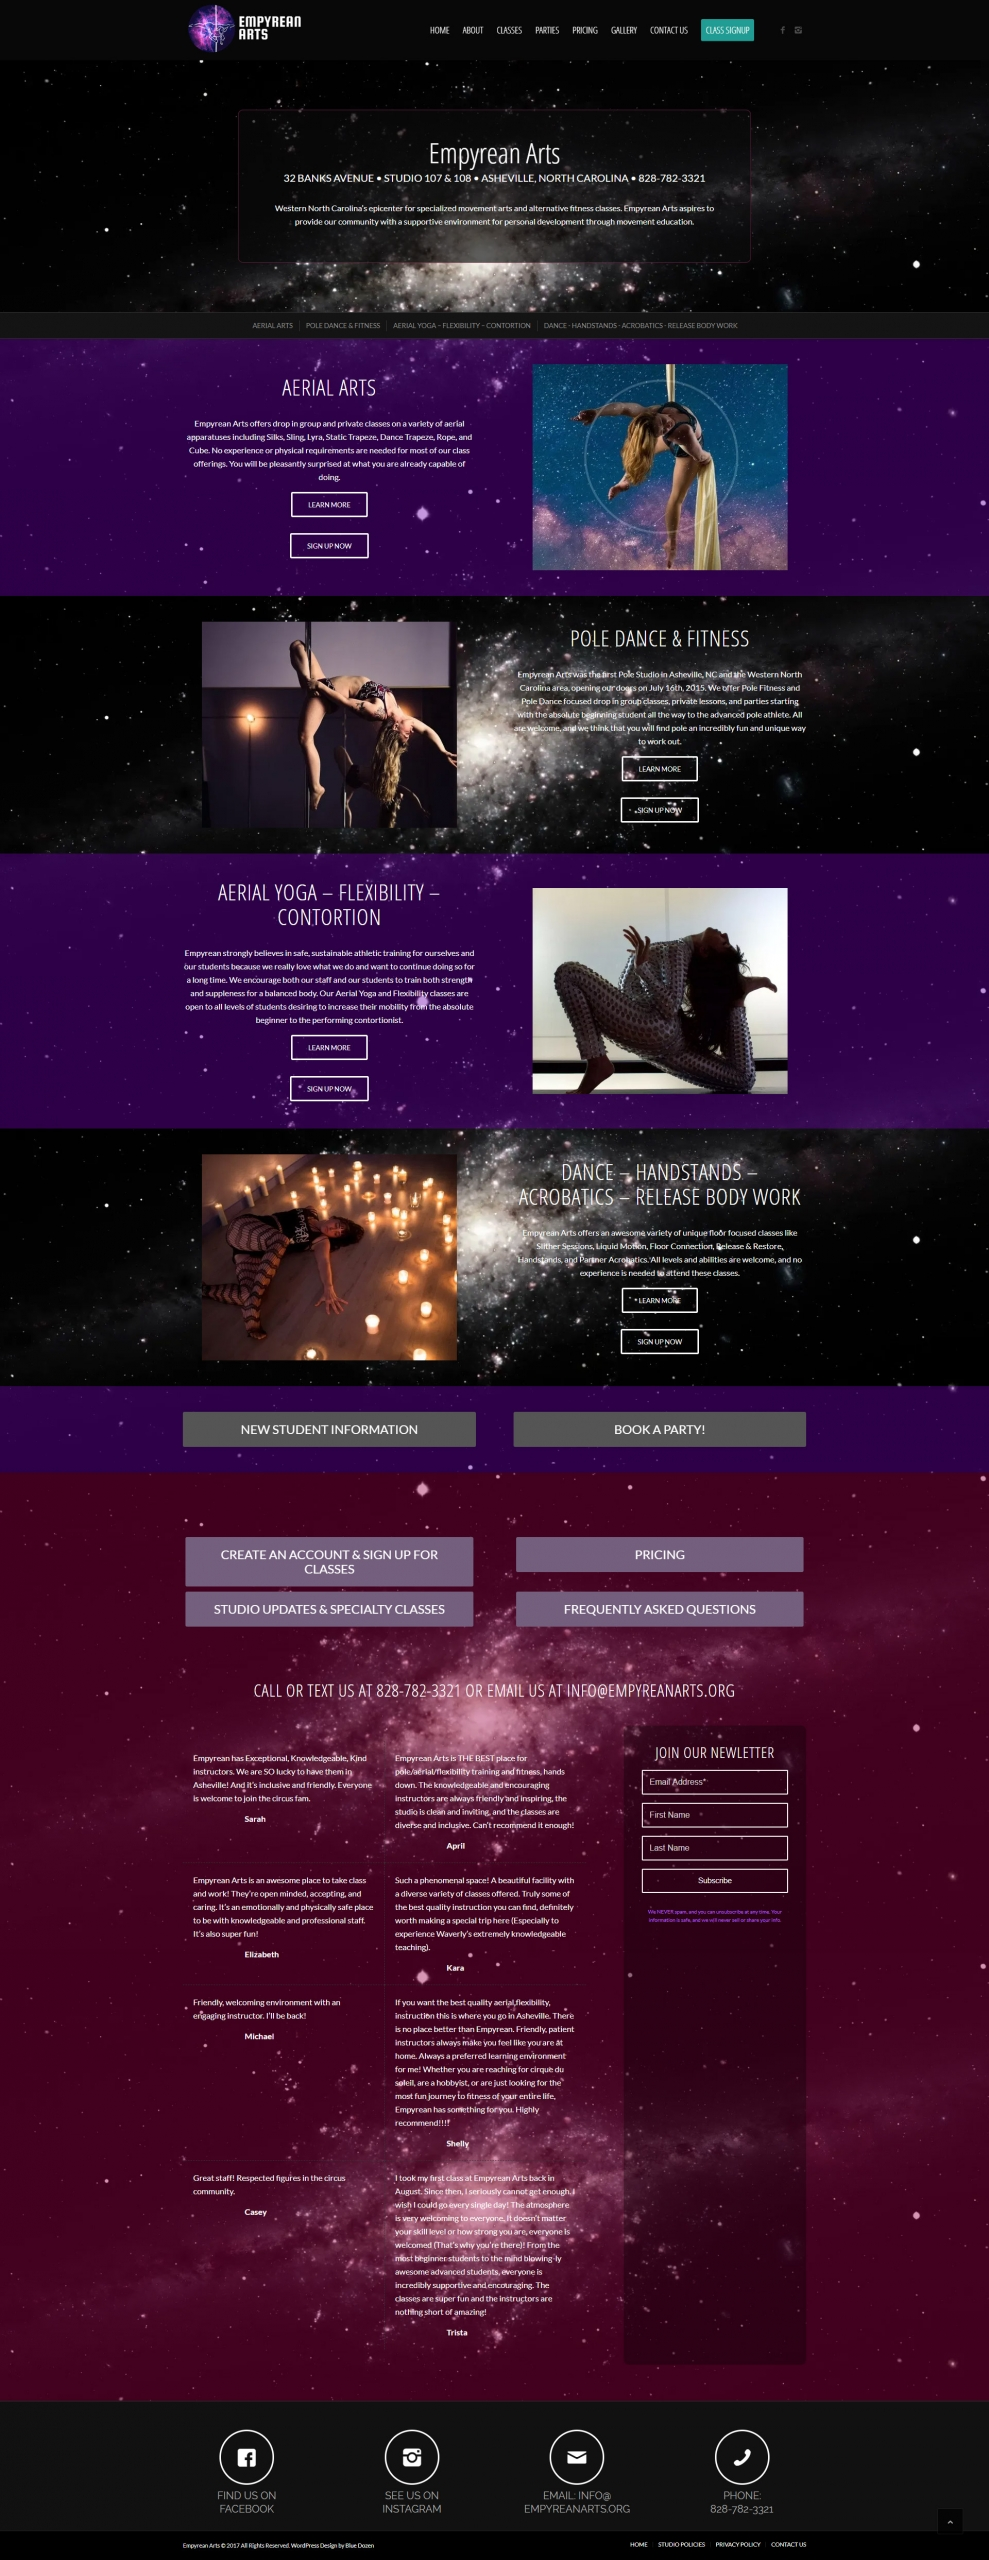 Web Site Design for Empyrean Arts